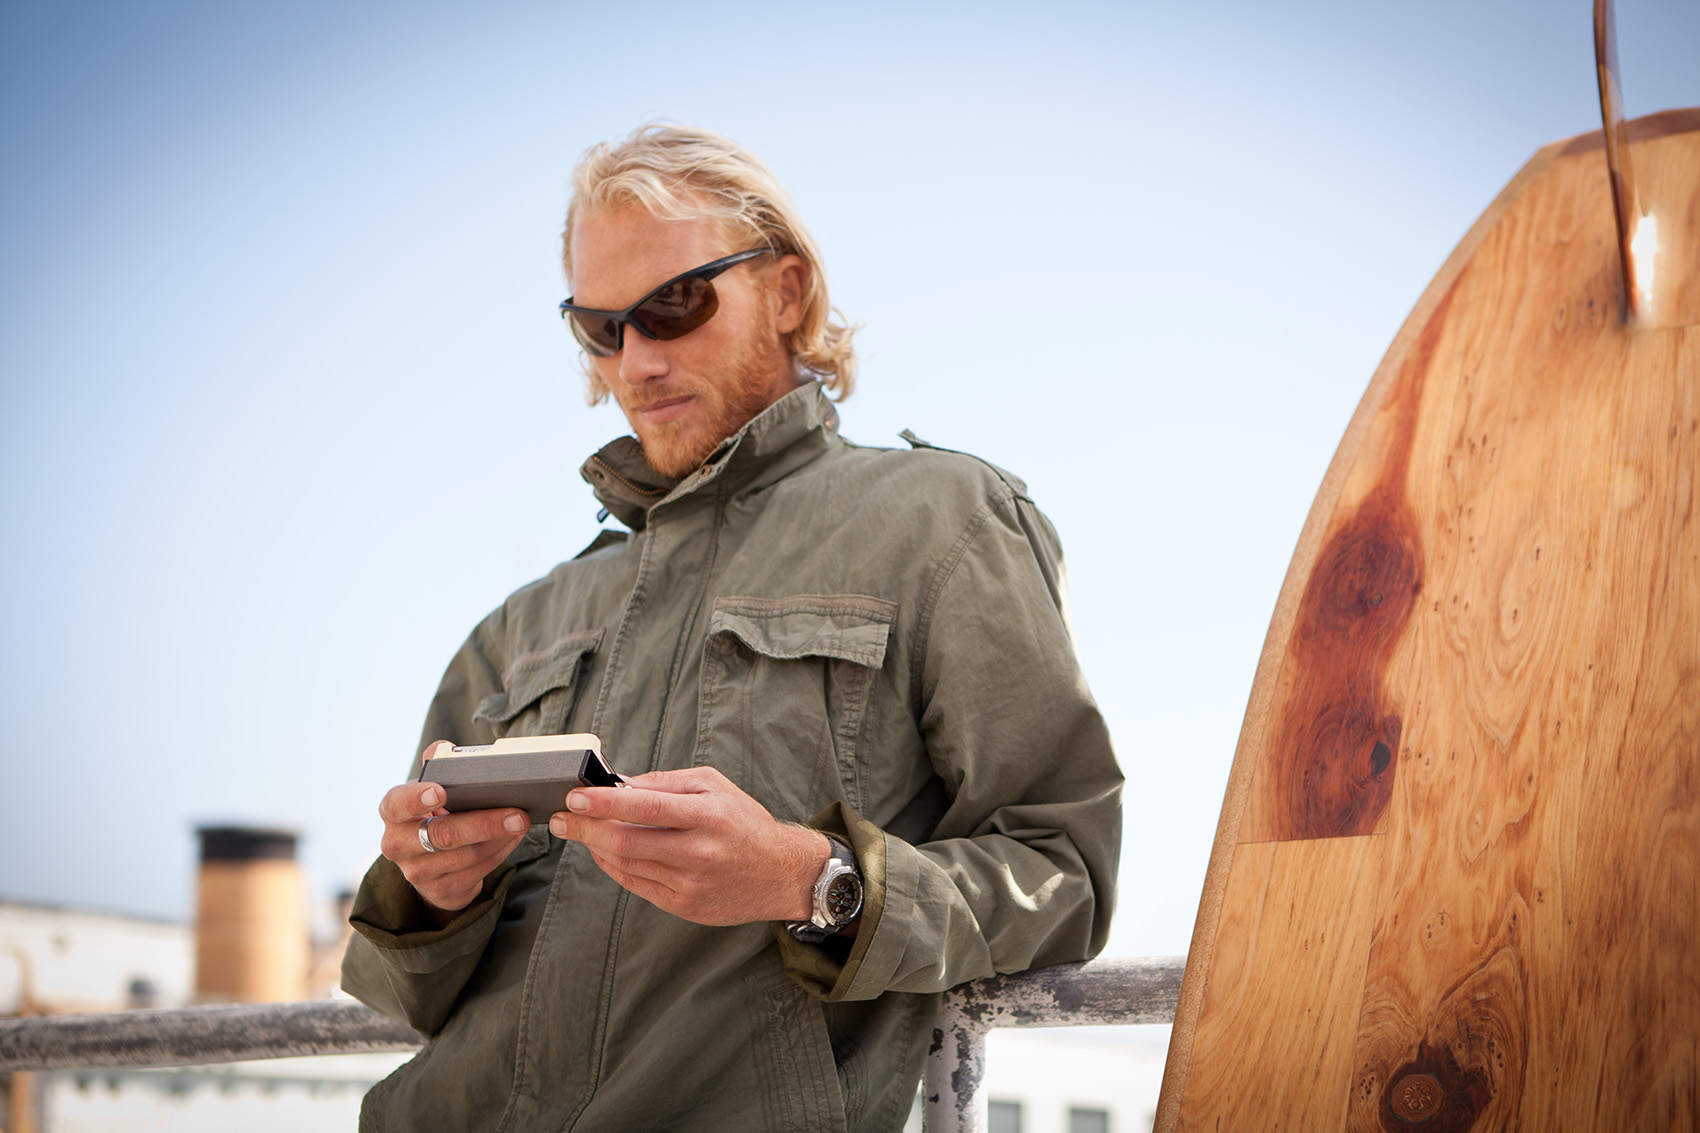 Surfer using a technology smartphone tablet outside